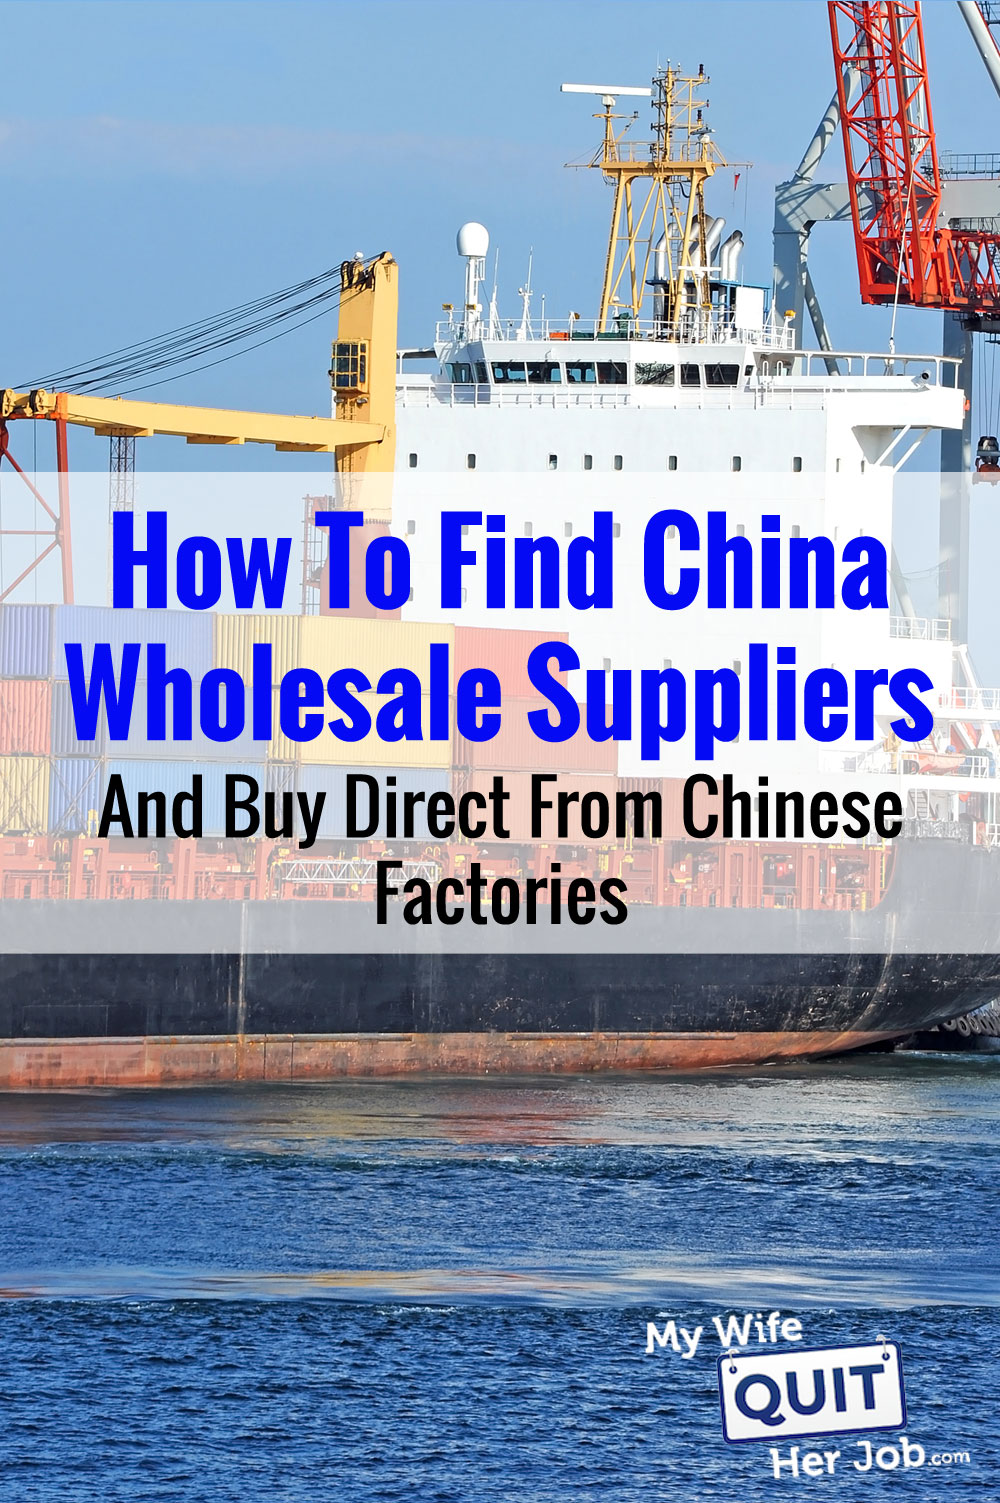 cf88d61320 How To Find China Wholesale Suppliers And Import Direct From Chinese  Factories